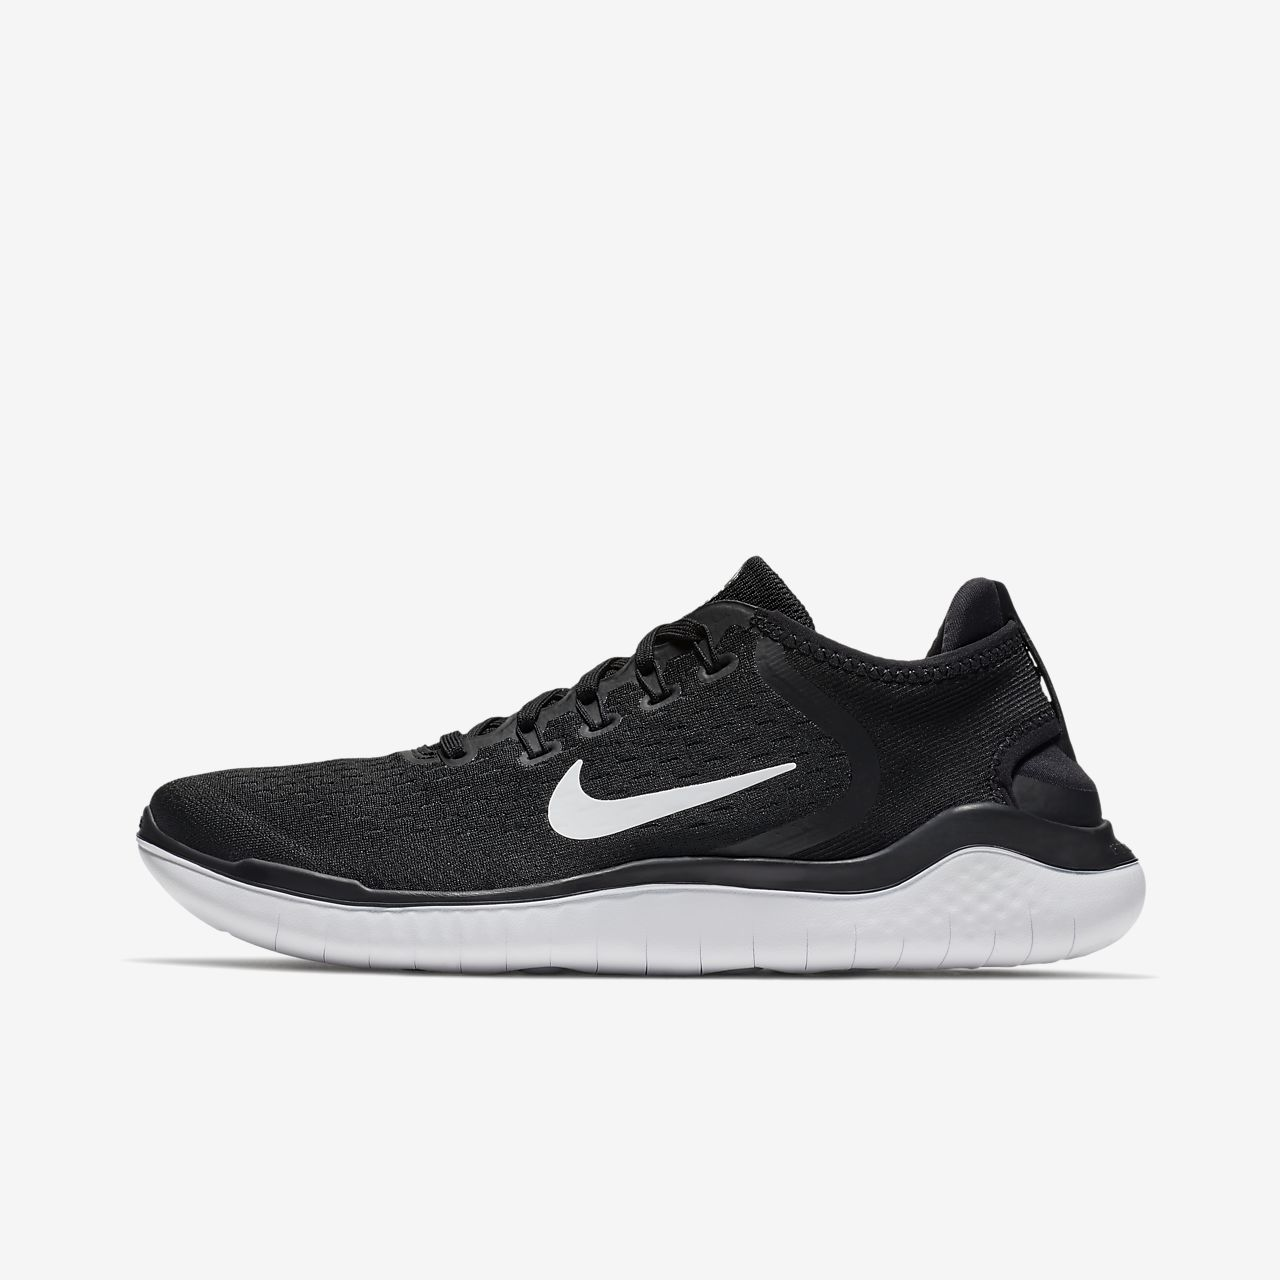 Mens Nike Free Run Tennis Shoes